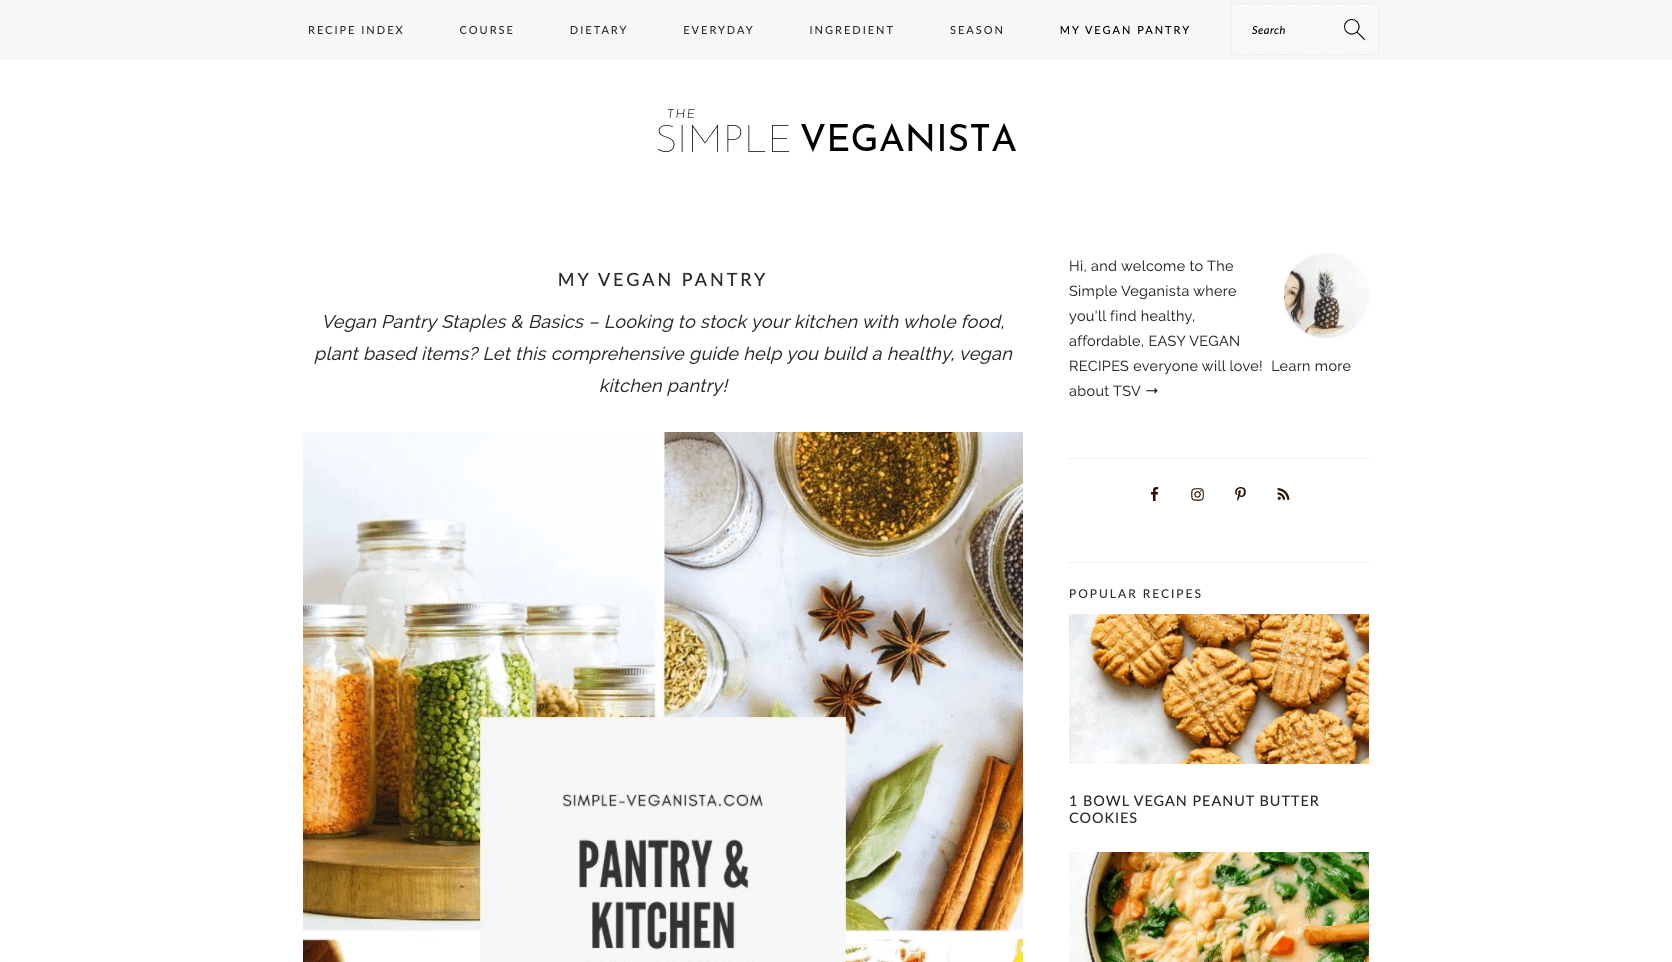 Pantry essentials you need when going vegan